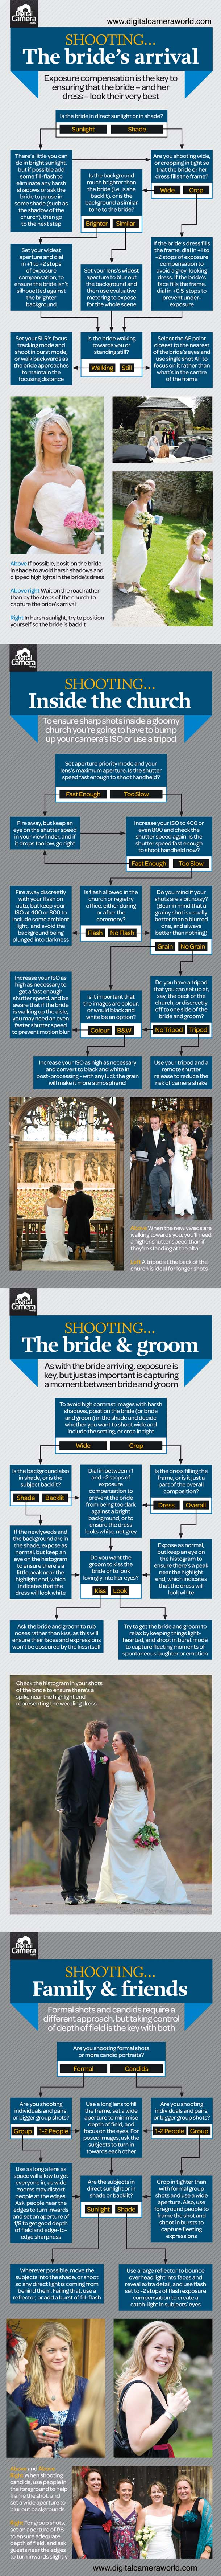 wedding photography cheatsheet